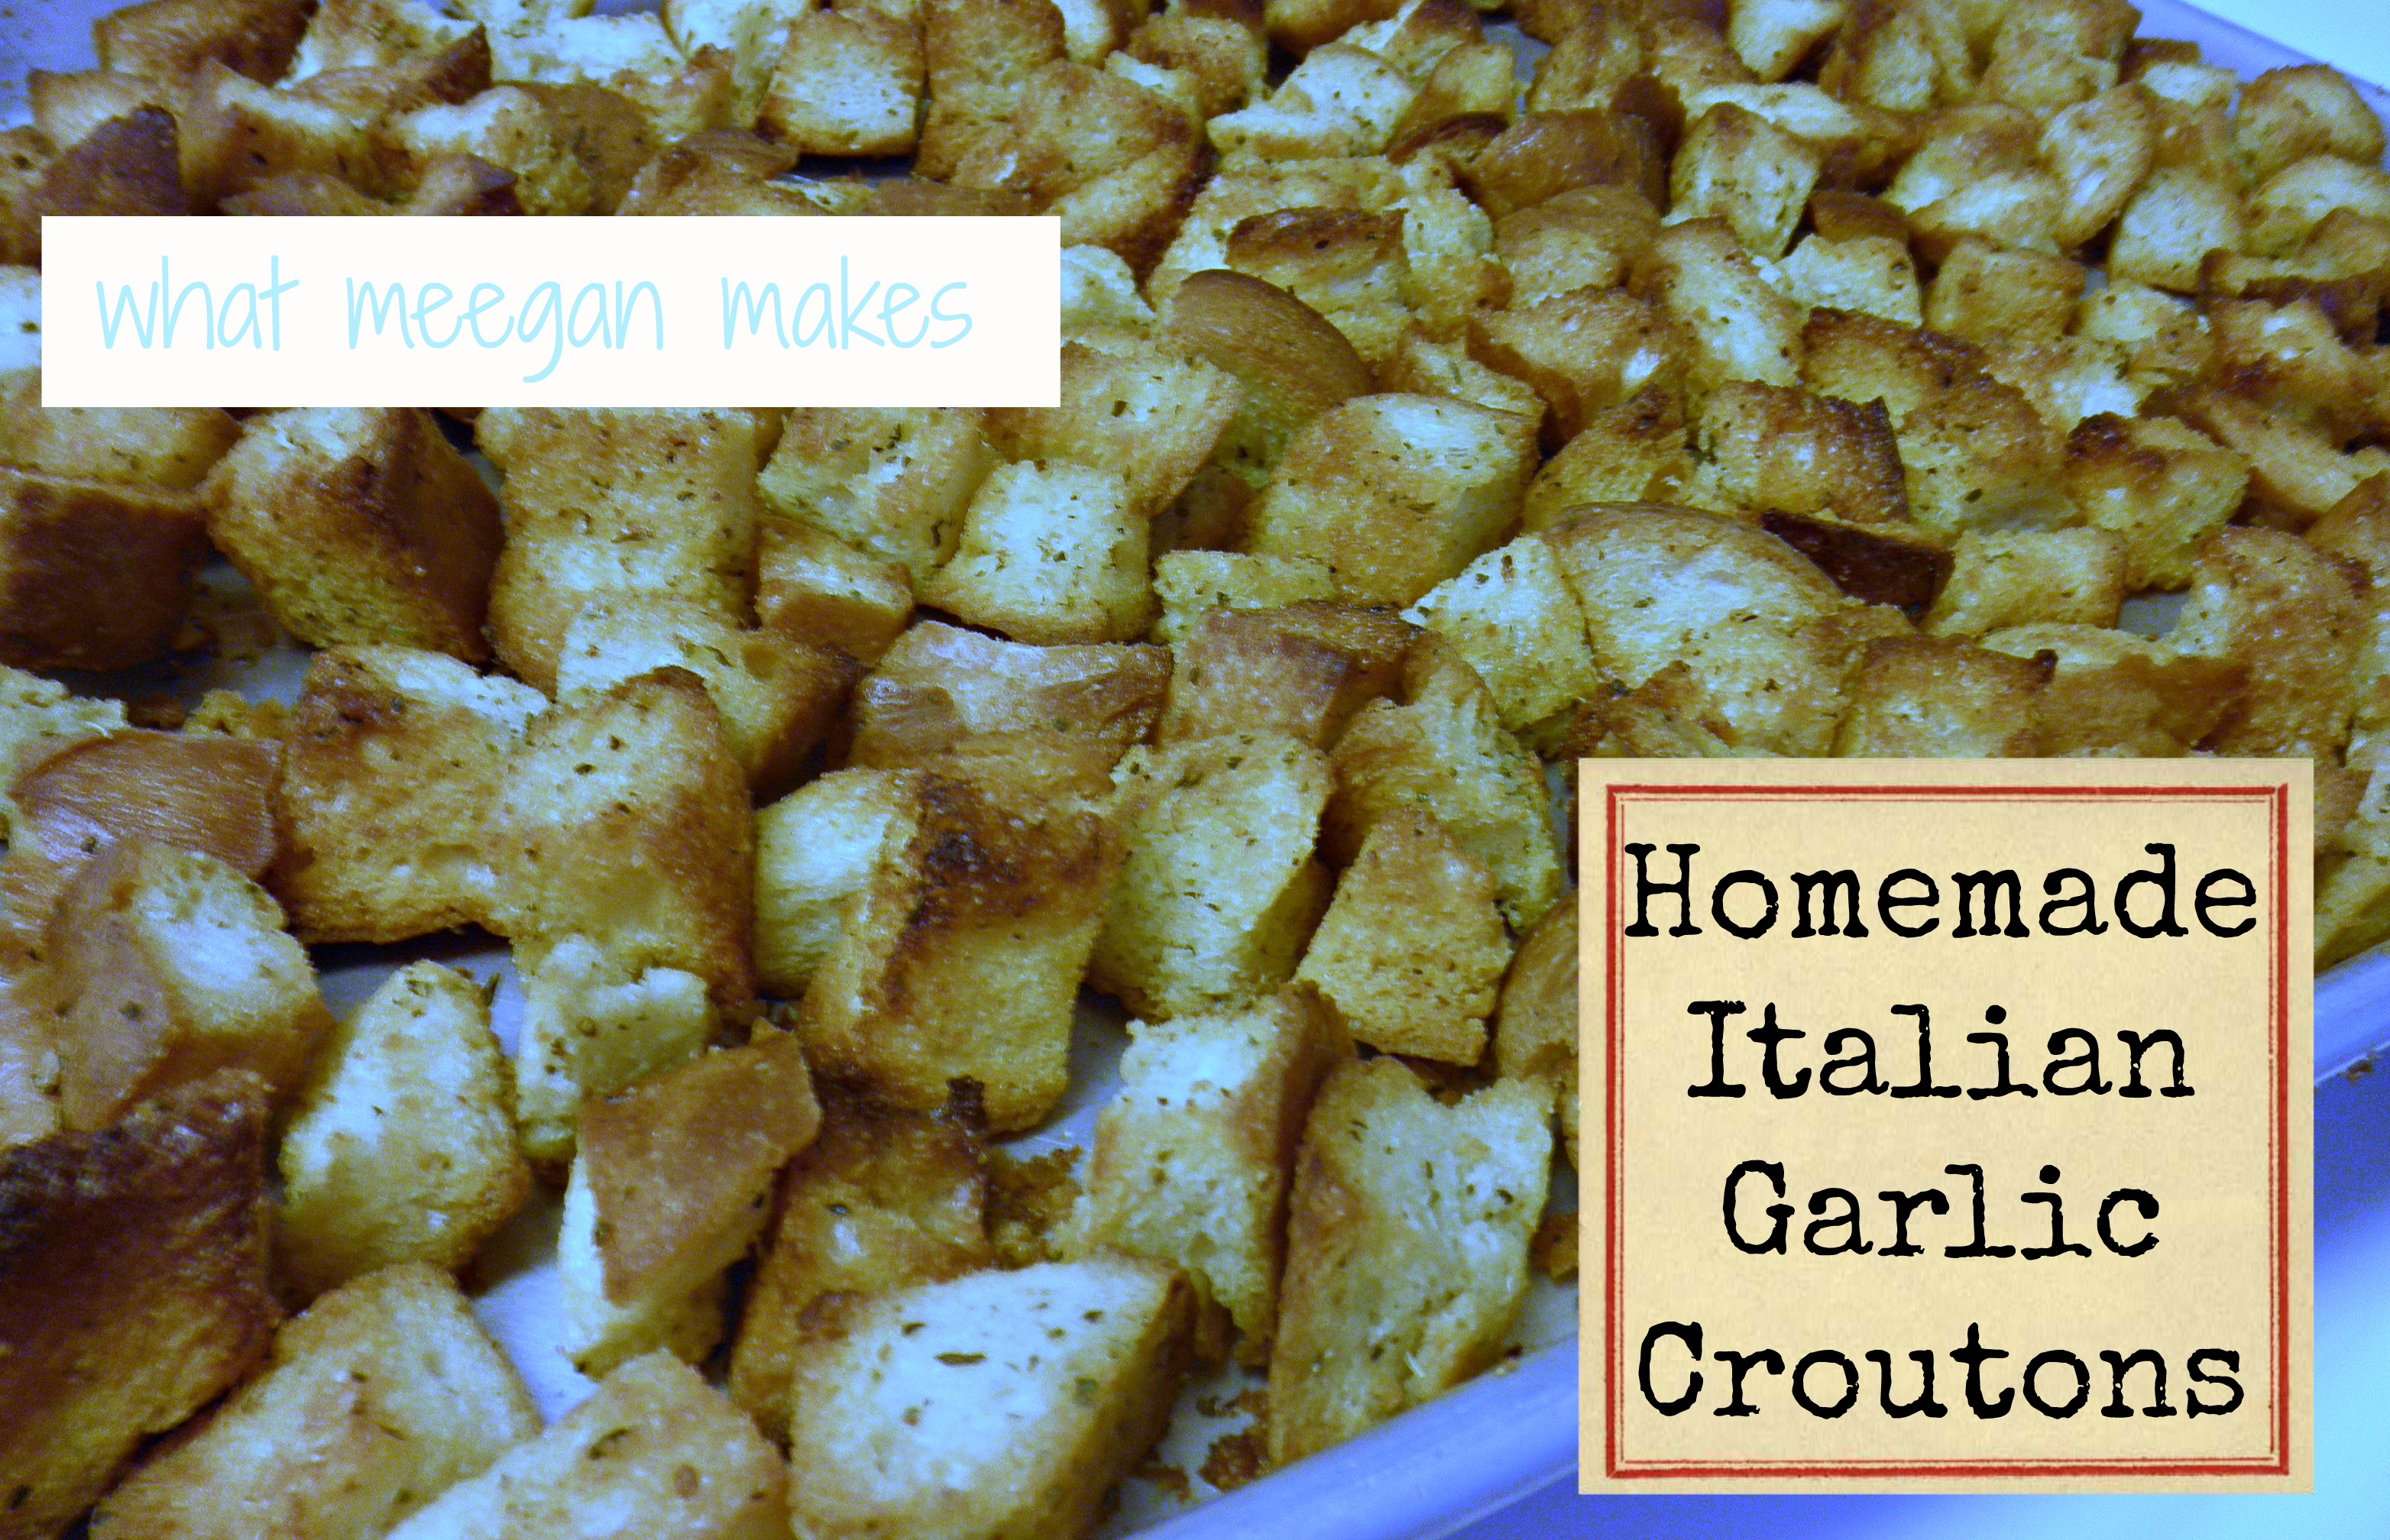 Homemade Italian Garlic Croutons